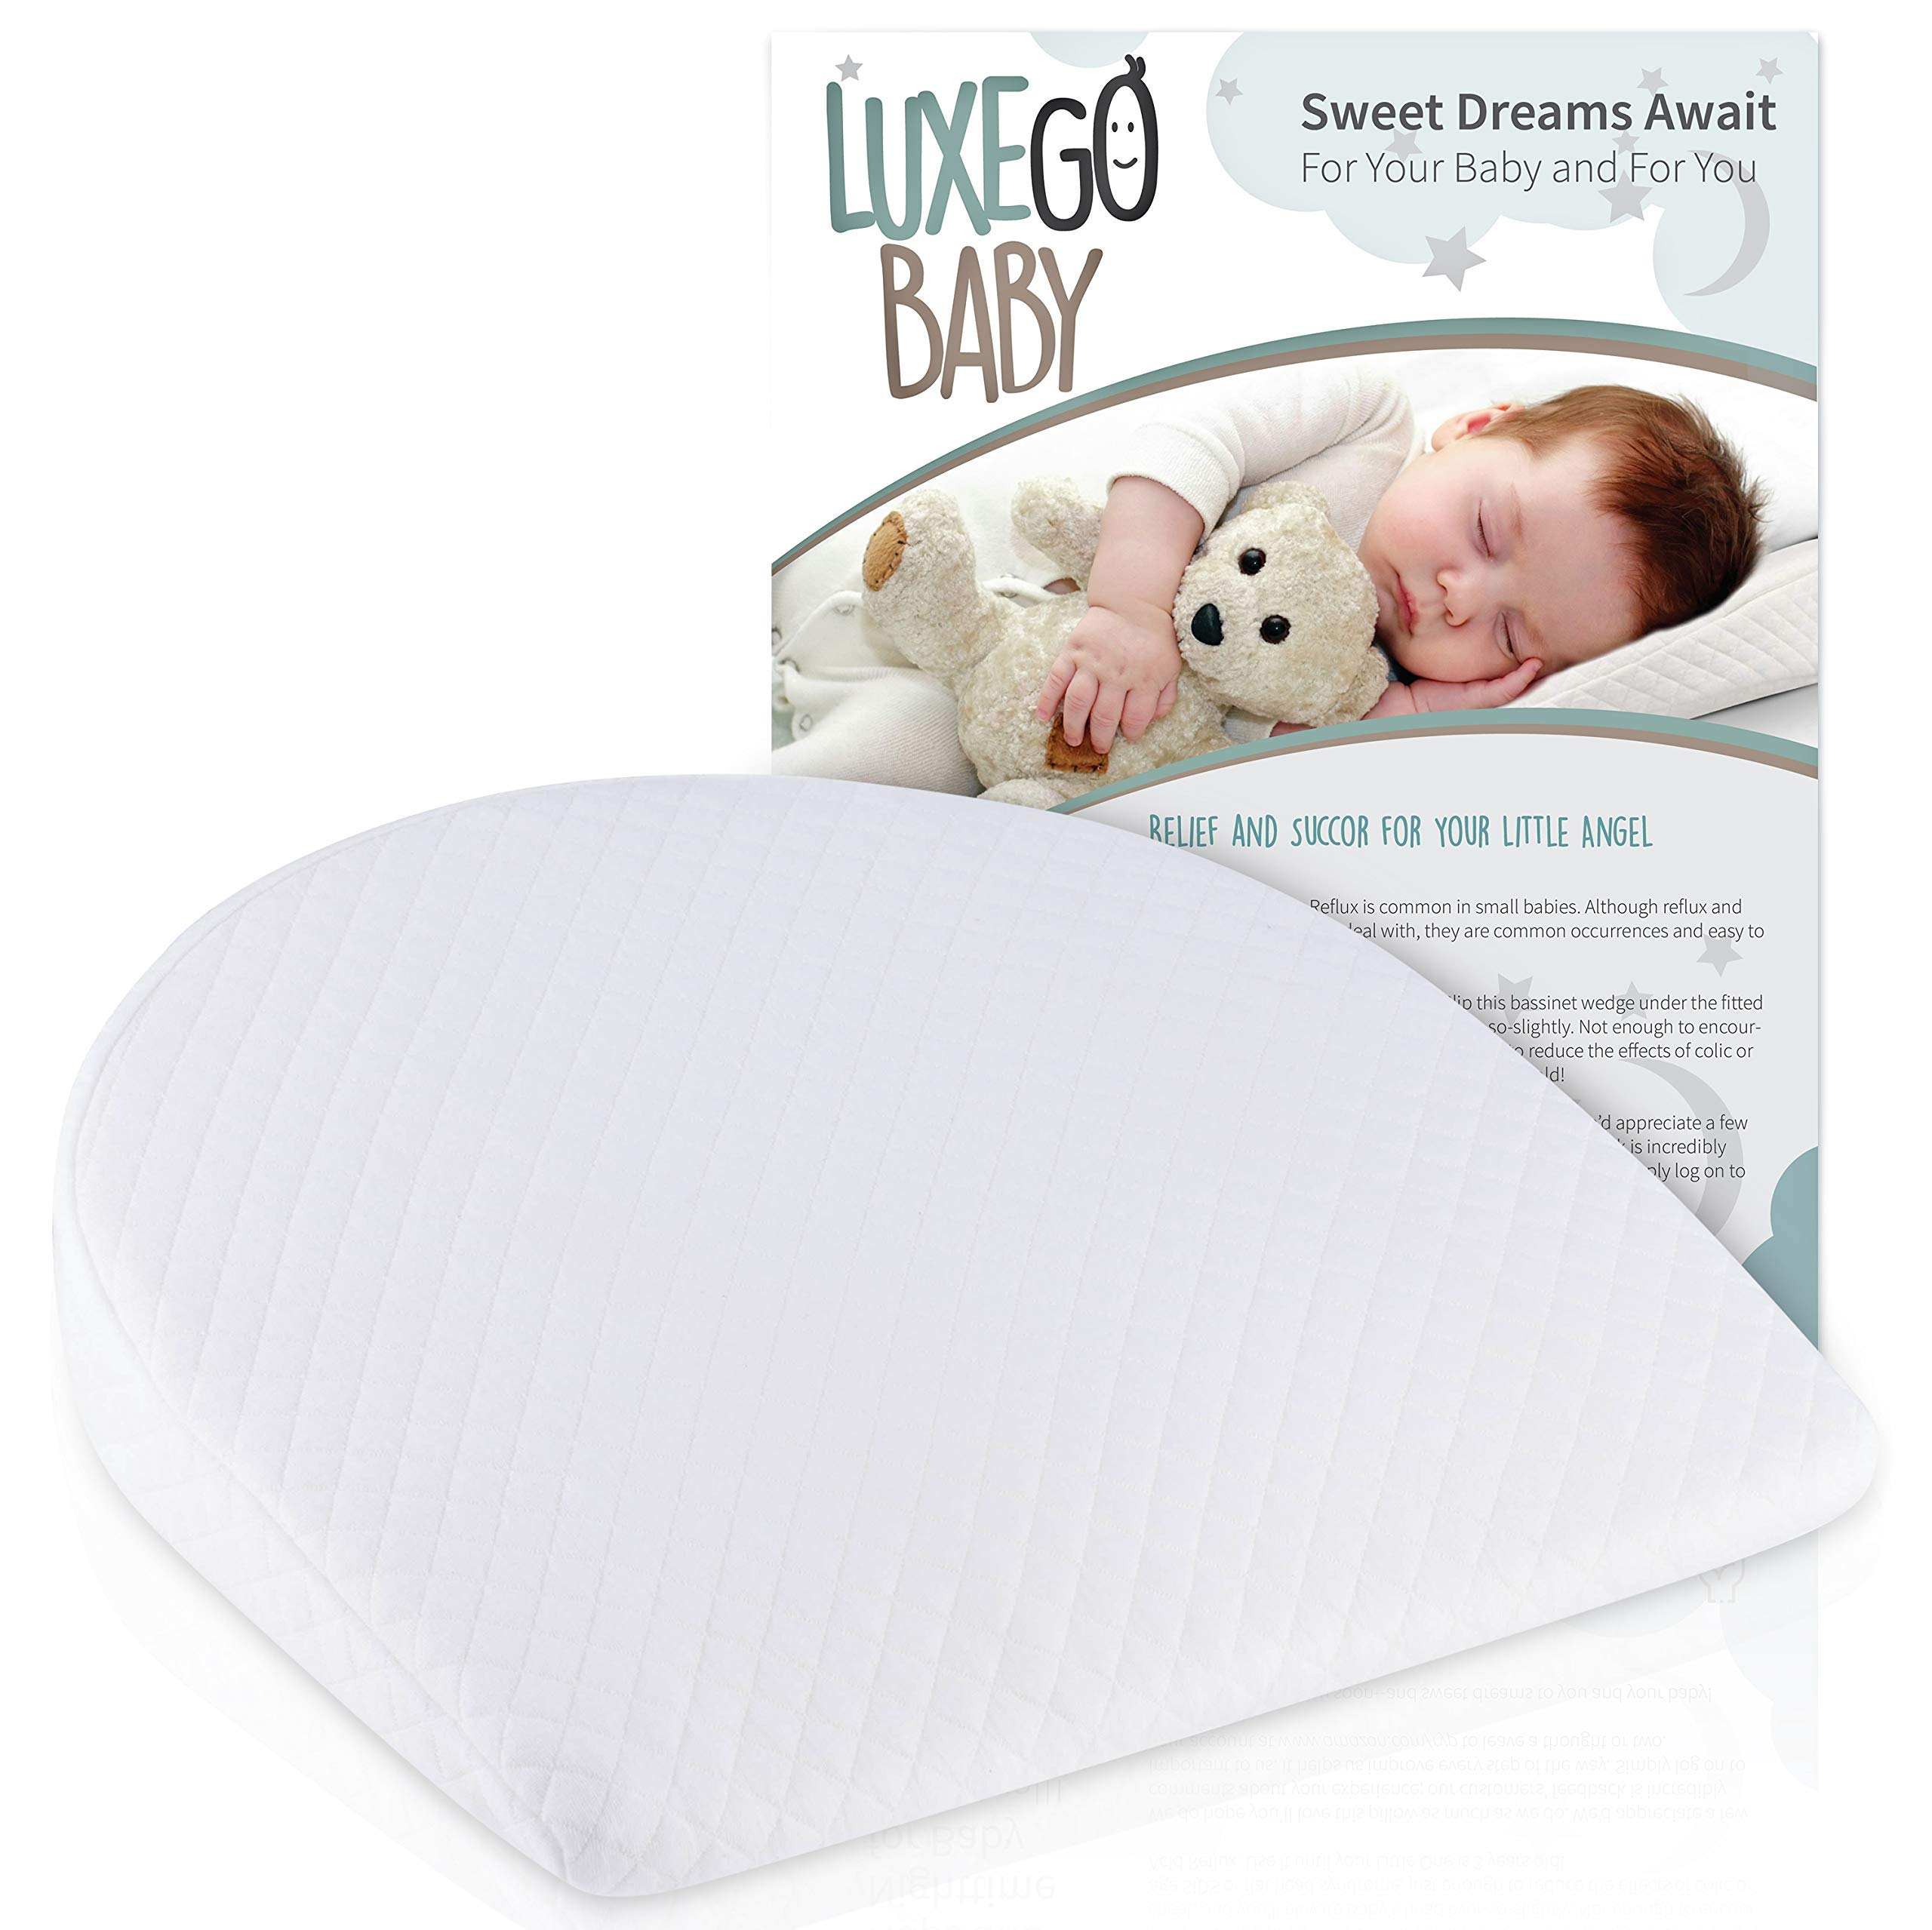 LuxeGo Baby Universal Bassinet Wedge for Reflux Colic & Spit Ups | Organic Cotton Waterproof Cover with Anti-Slip Backing | Sleep Positioner for Baby for a Goodnight's Sleep | Newborn Babies & Infants by LuxeGo Baby